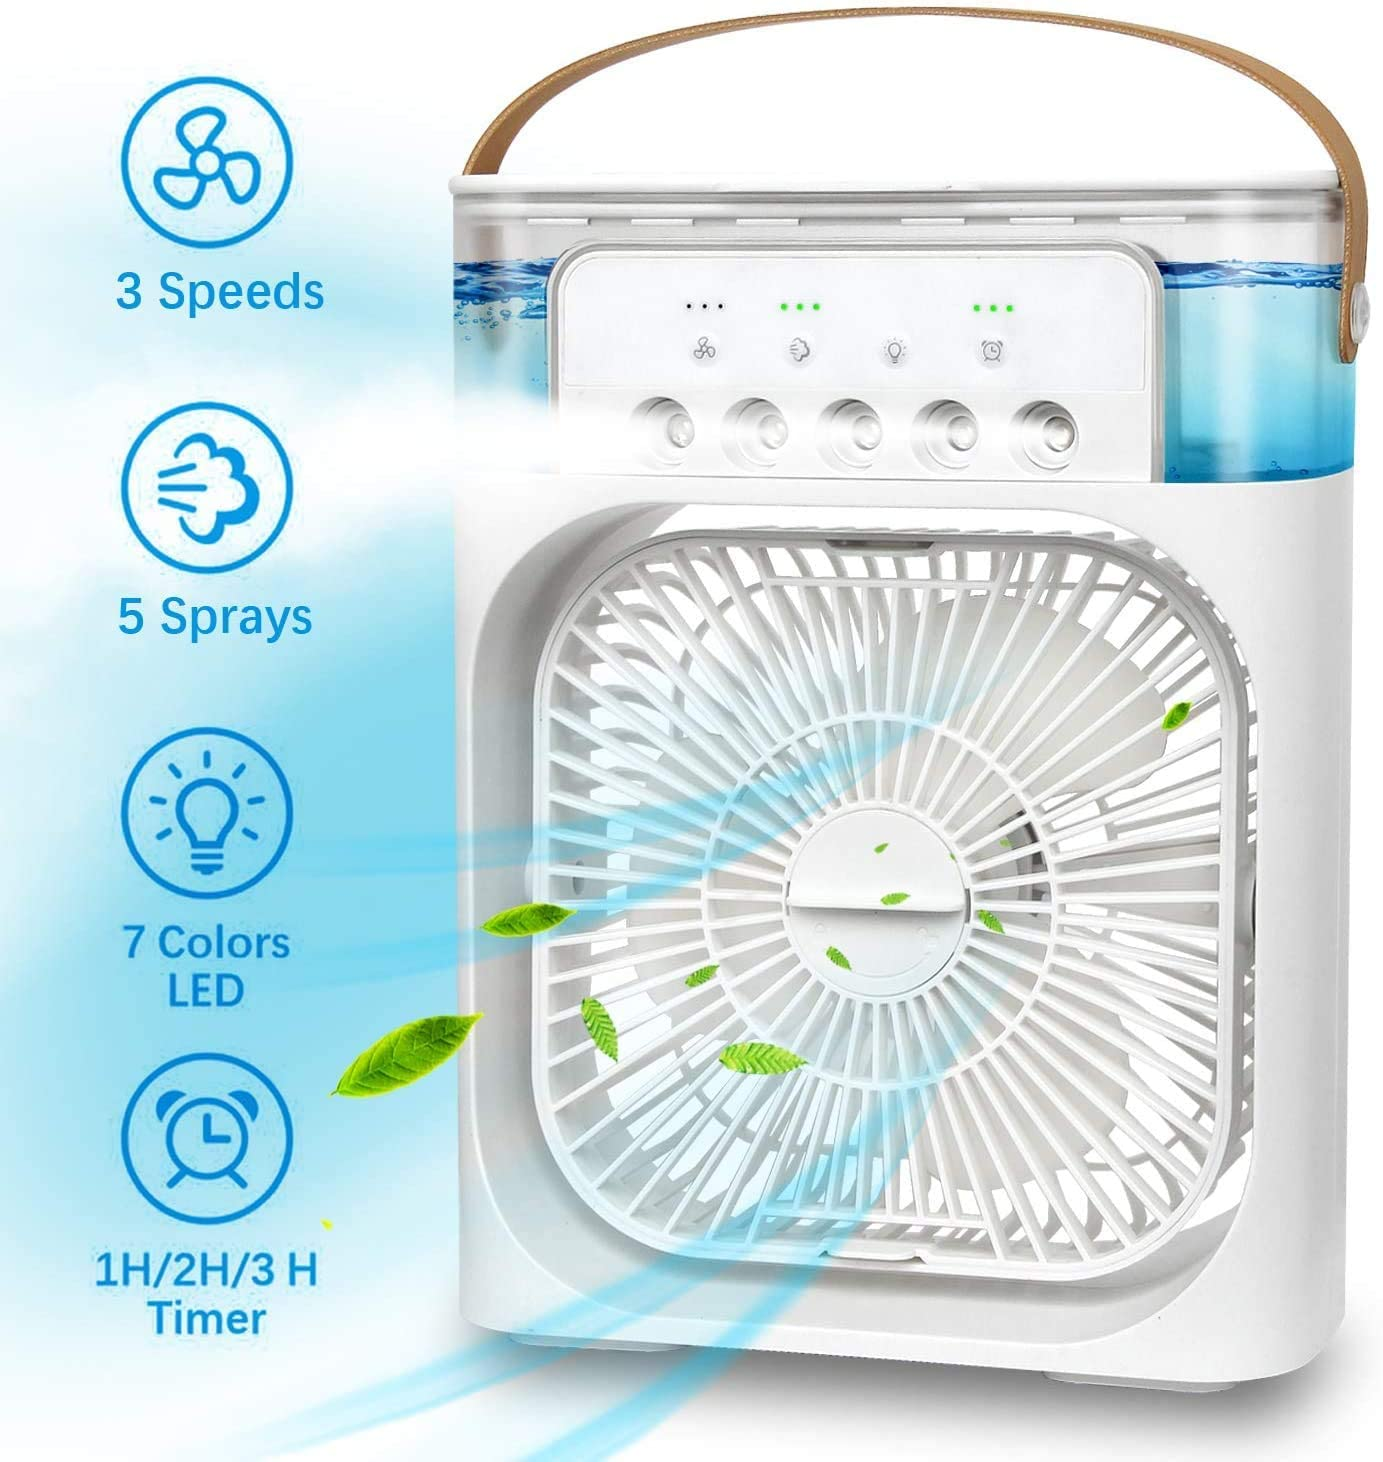 XKRSBS Portable Air Conditioner Fan, Mini Evaporative Air Cooler with 7 Colors LED Light, 1/2/3 H Timer, 3 Wind Speeds and 3 Spray Modes